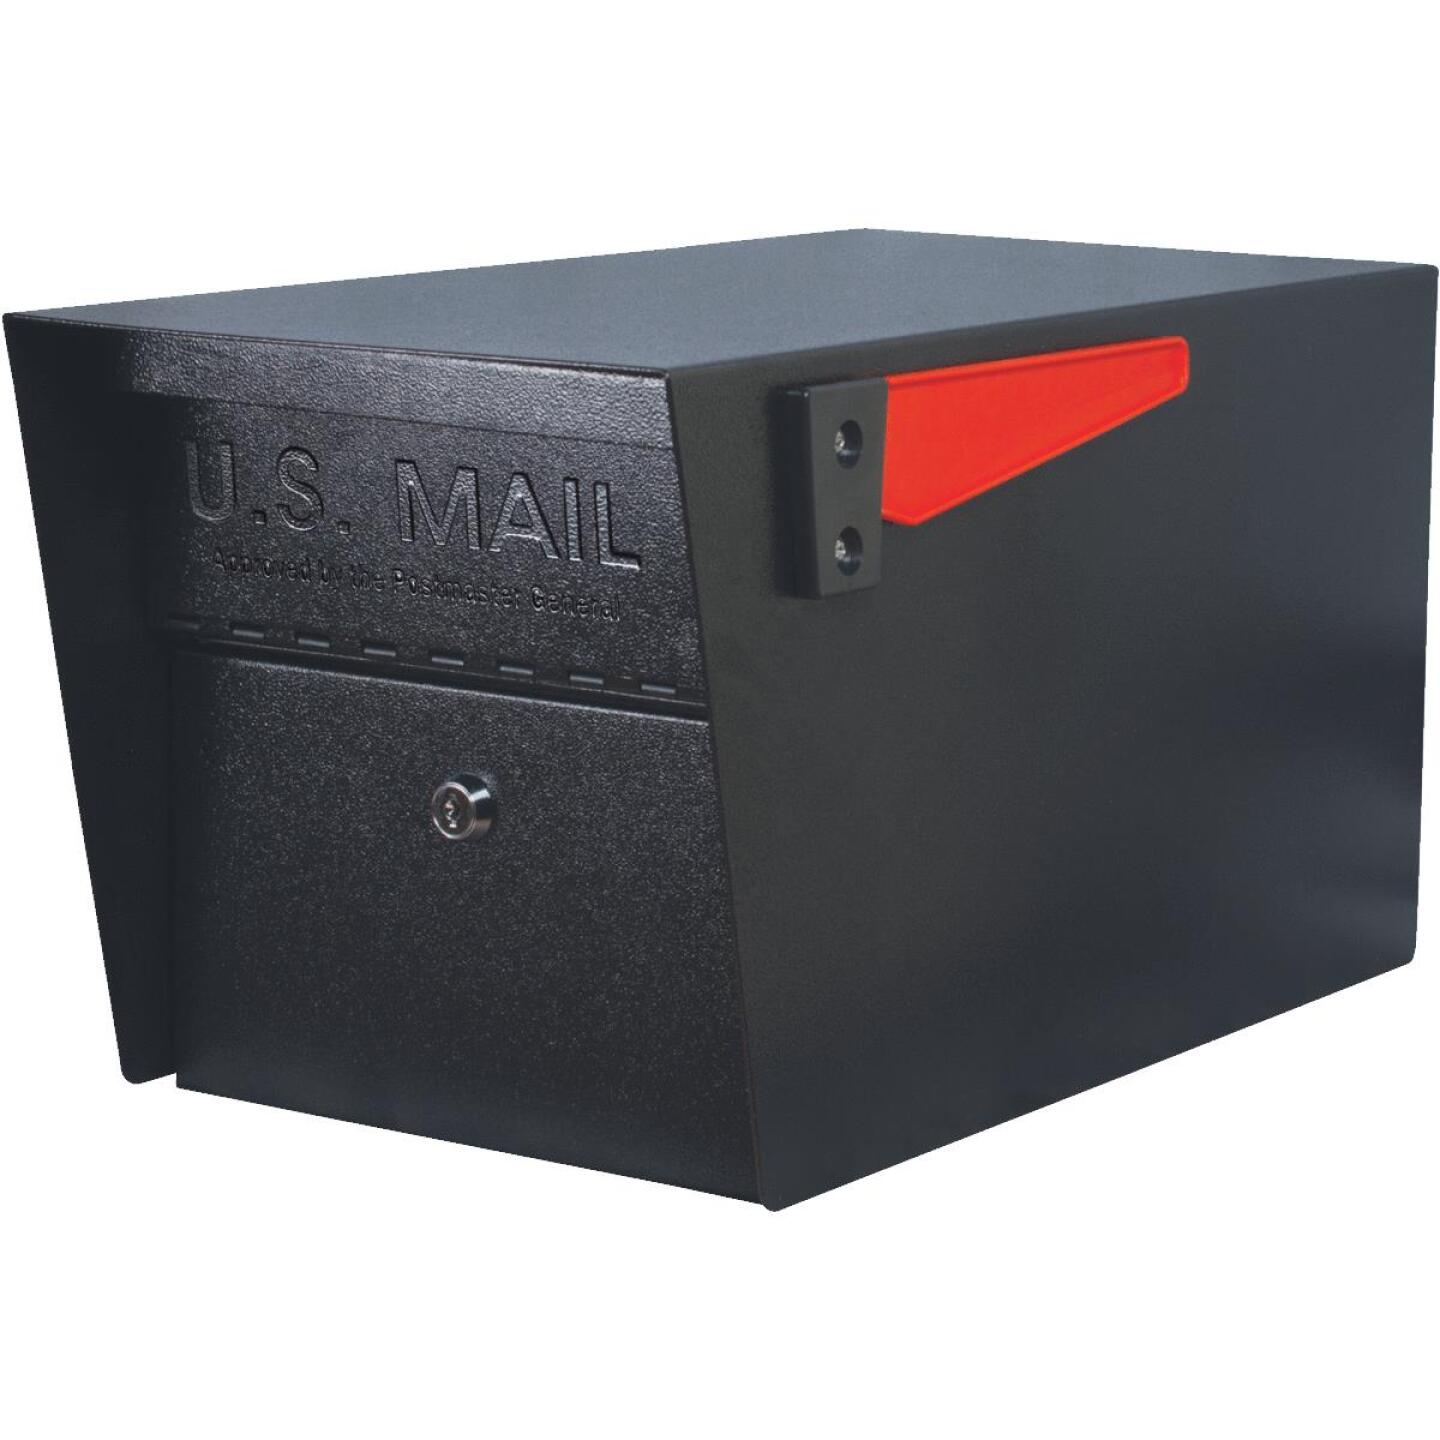 Mail Boss Mail Manager Black Steel Locking Security Post Mount Mailbox Image 1